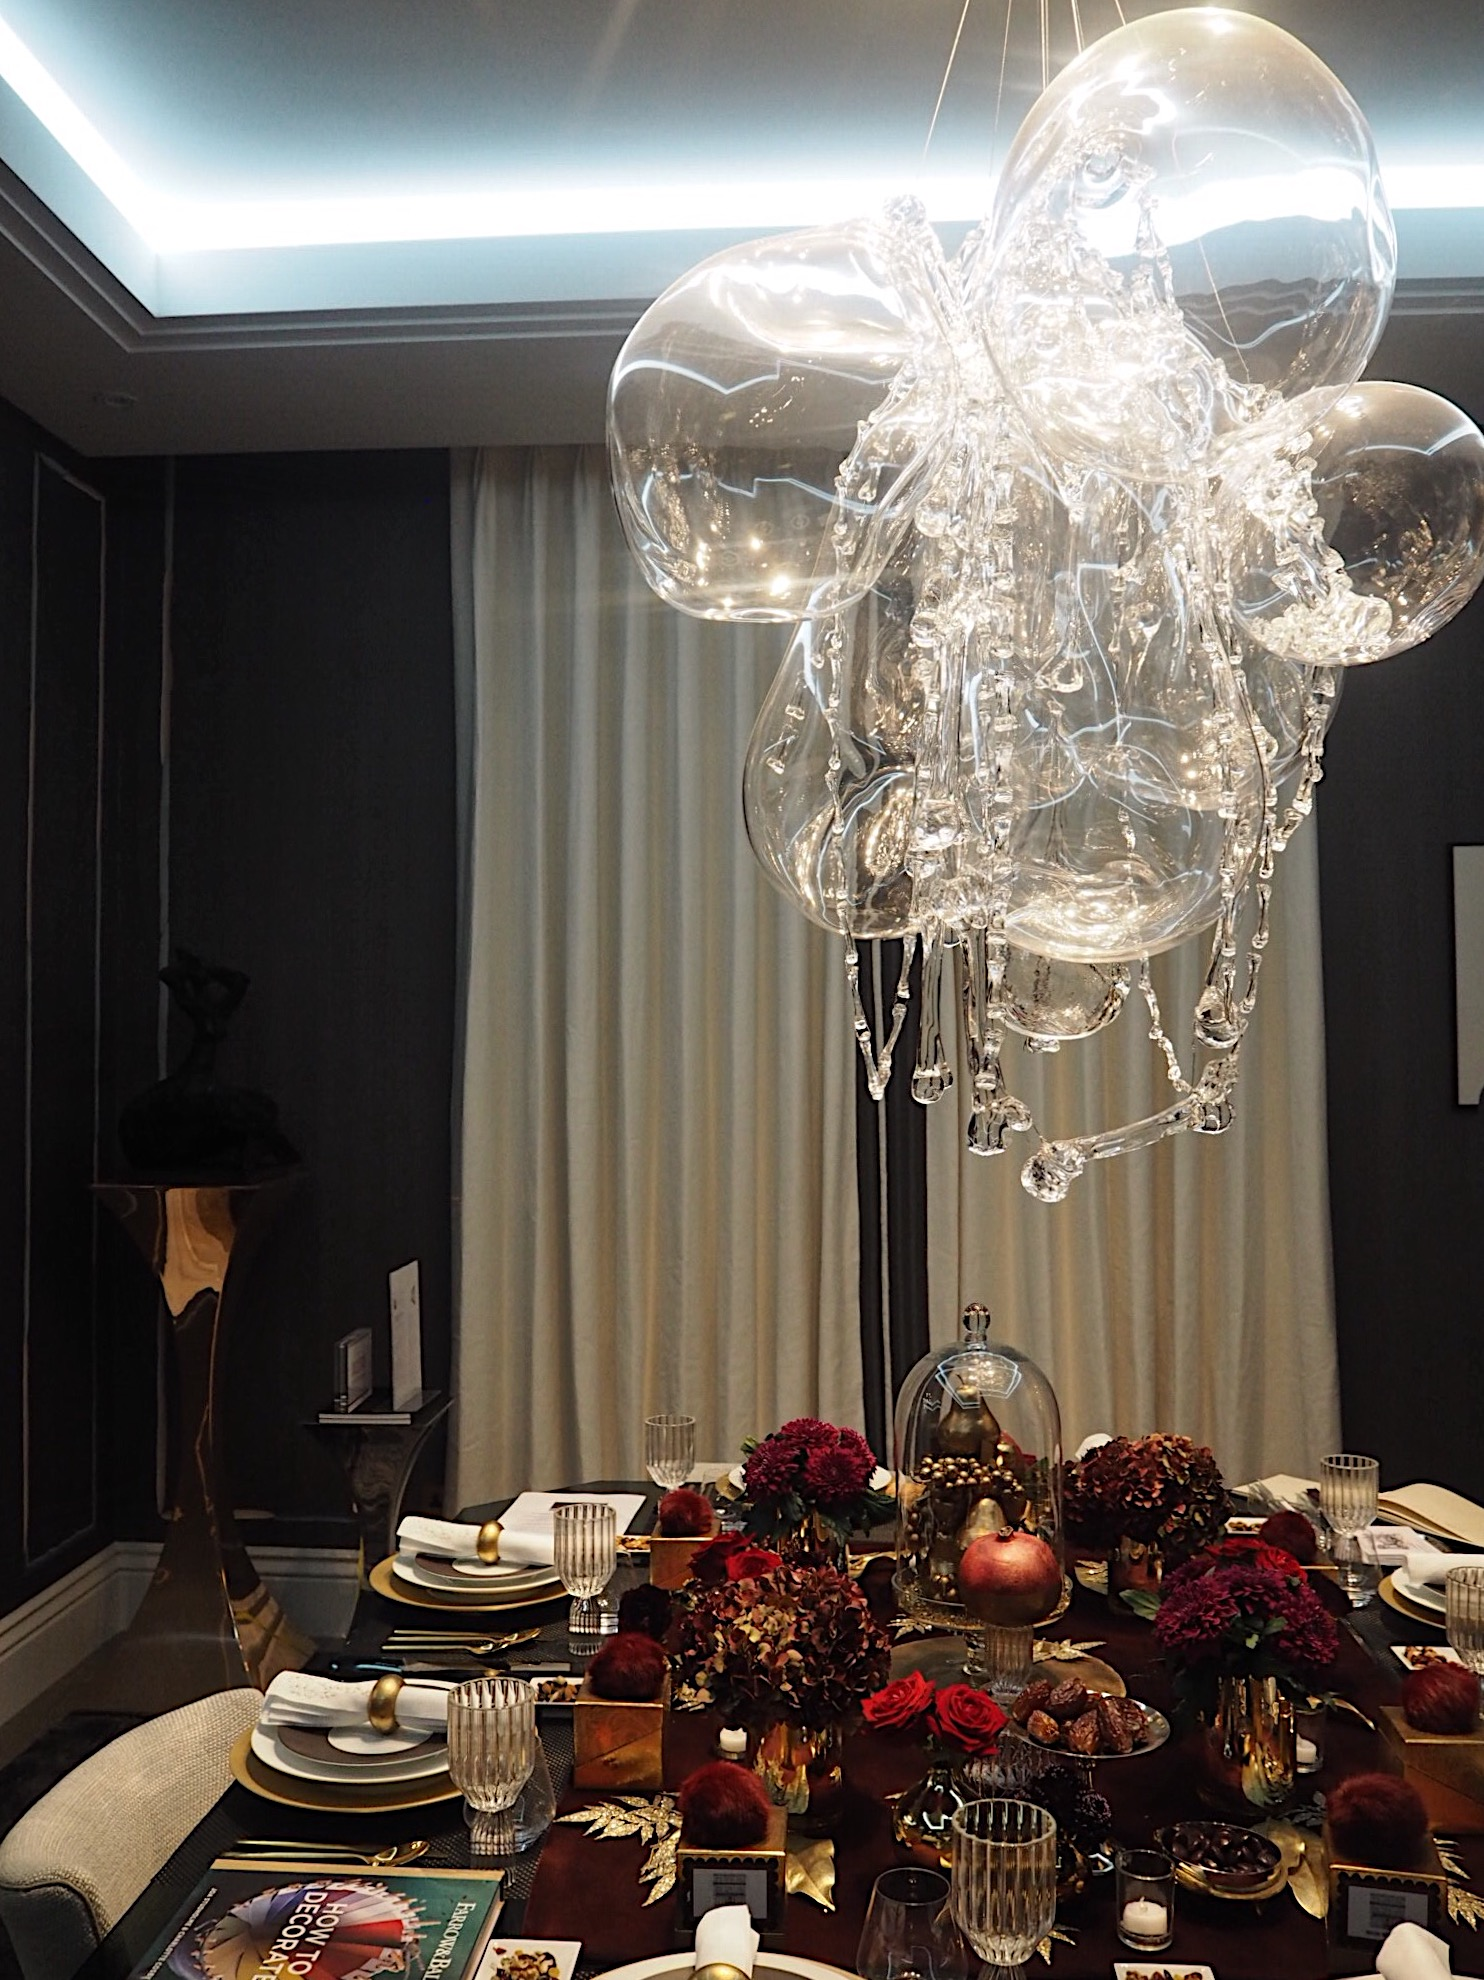 This voluptuous, glamorous room is by the Co-Chair and Creative Director of Holiday House London, Rachel Laxer.